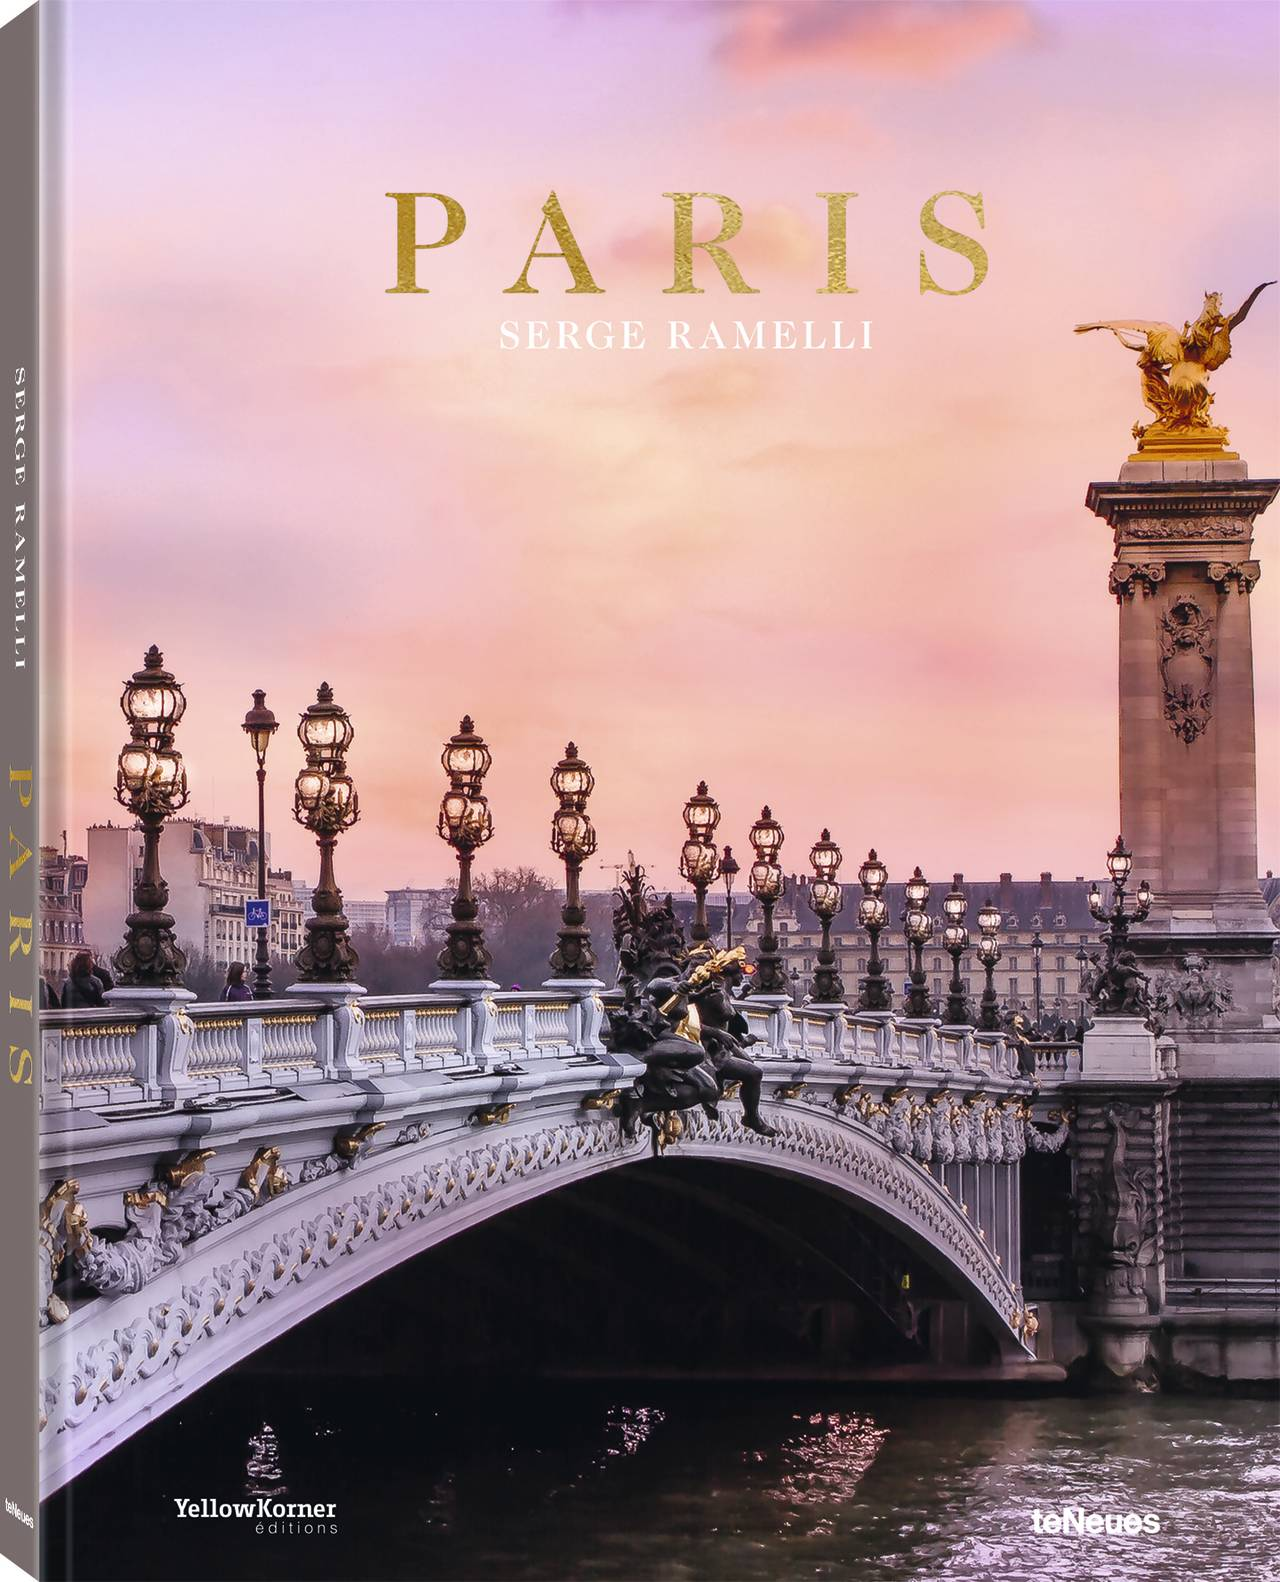 © Paris by Serge Ramelli, published by teNeues, www.teneues.com, The Pont Alexandre III is a relic of the International Exposition in 1900, Photo © 2019 Serge Ramelli. All rights reserved.